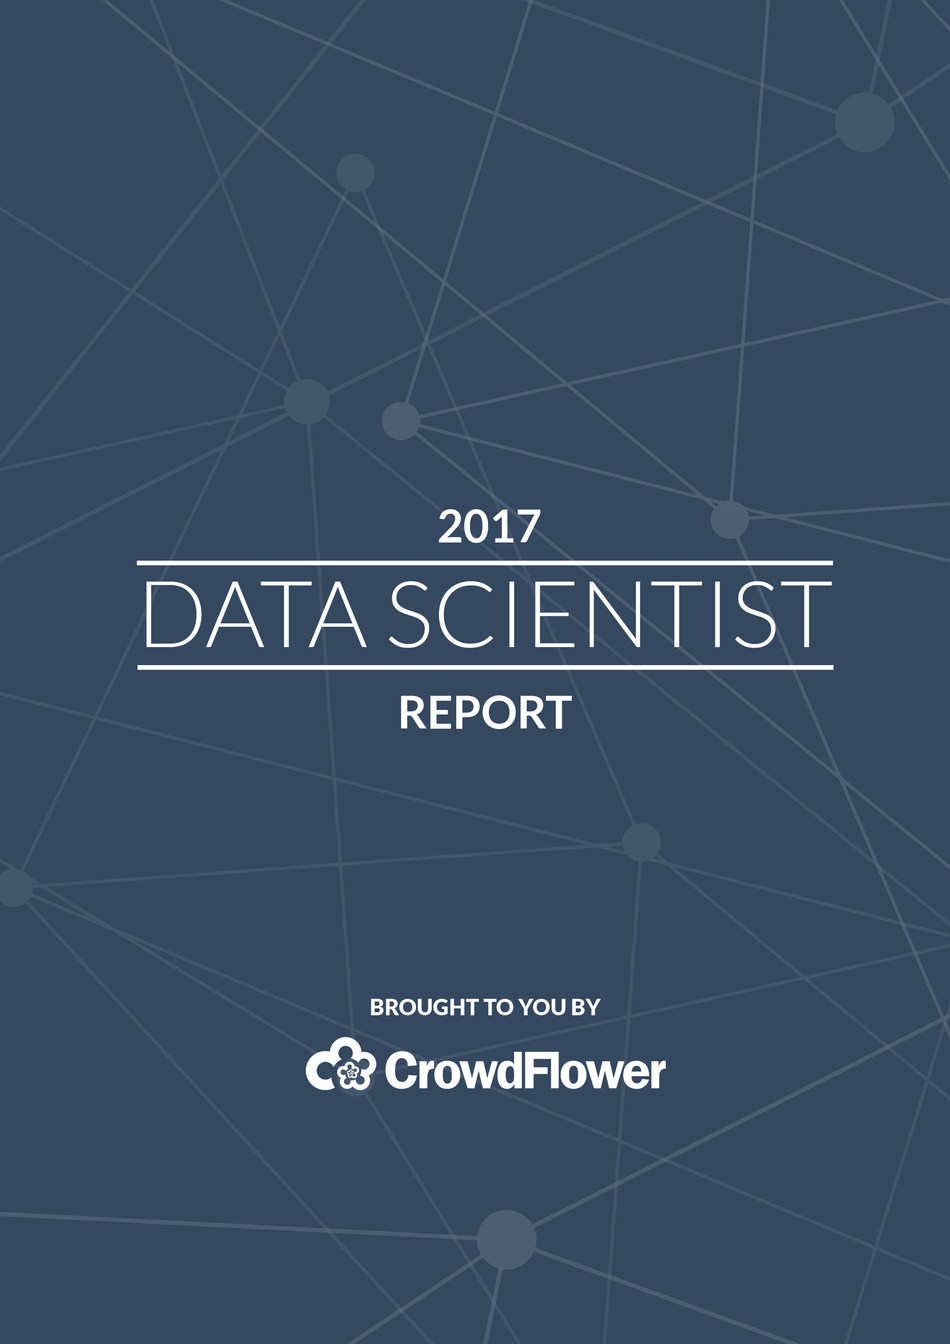 The 2017 Data Scientist Report Brought To You By CrowdFlower.